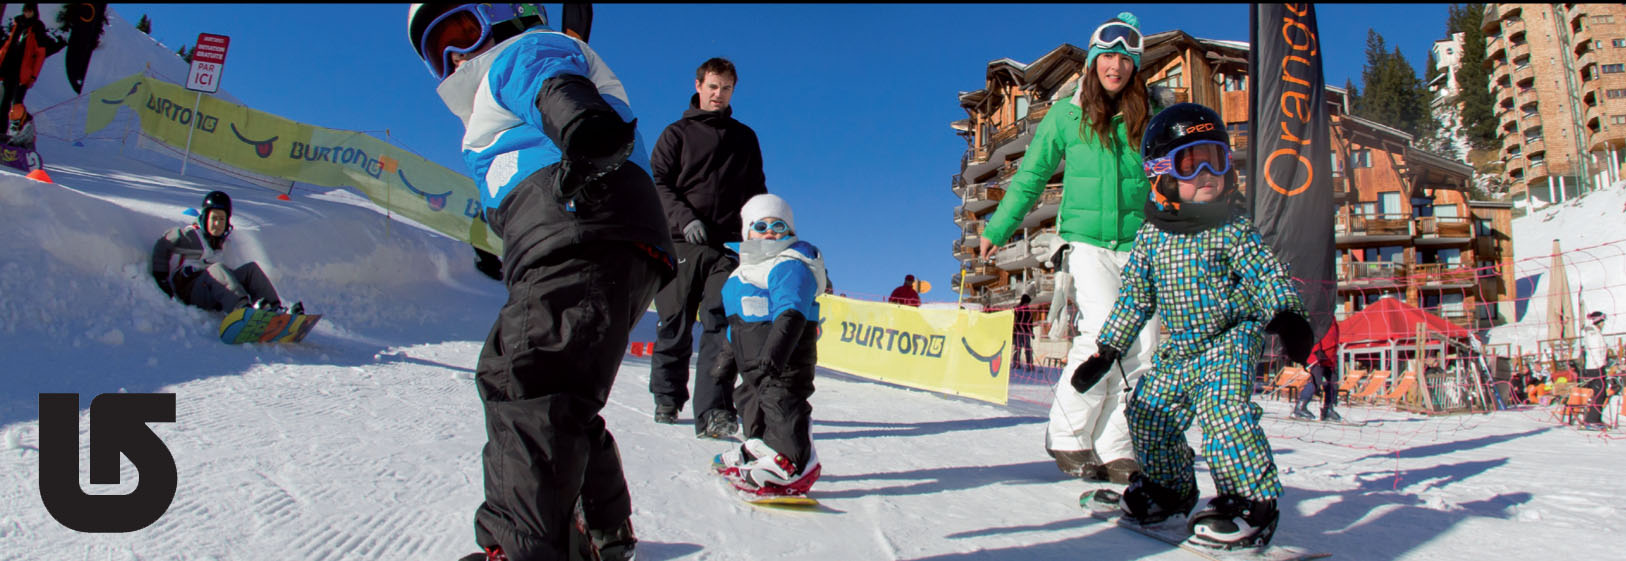 kids snowboard lessons france age